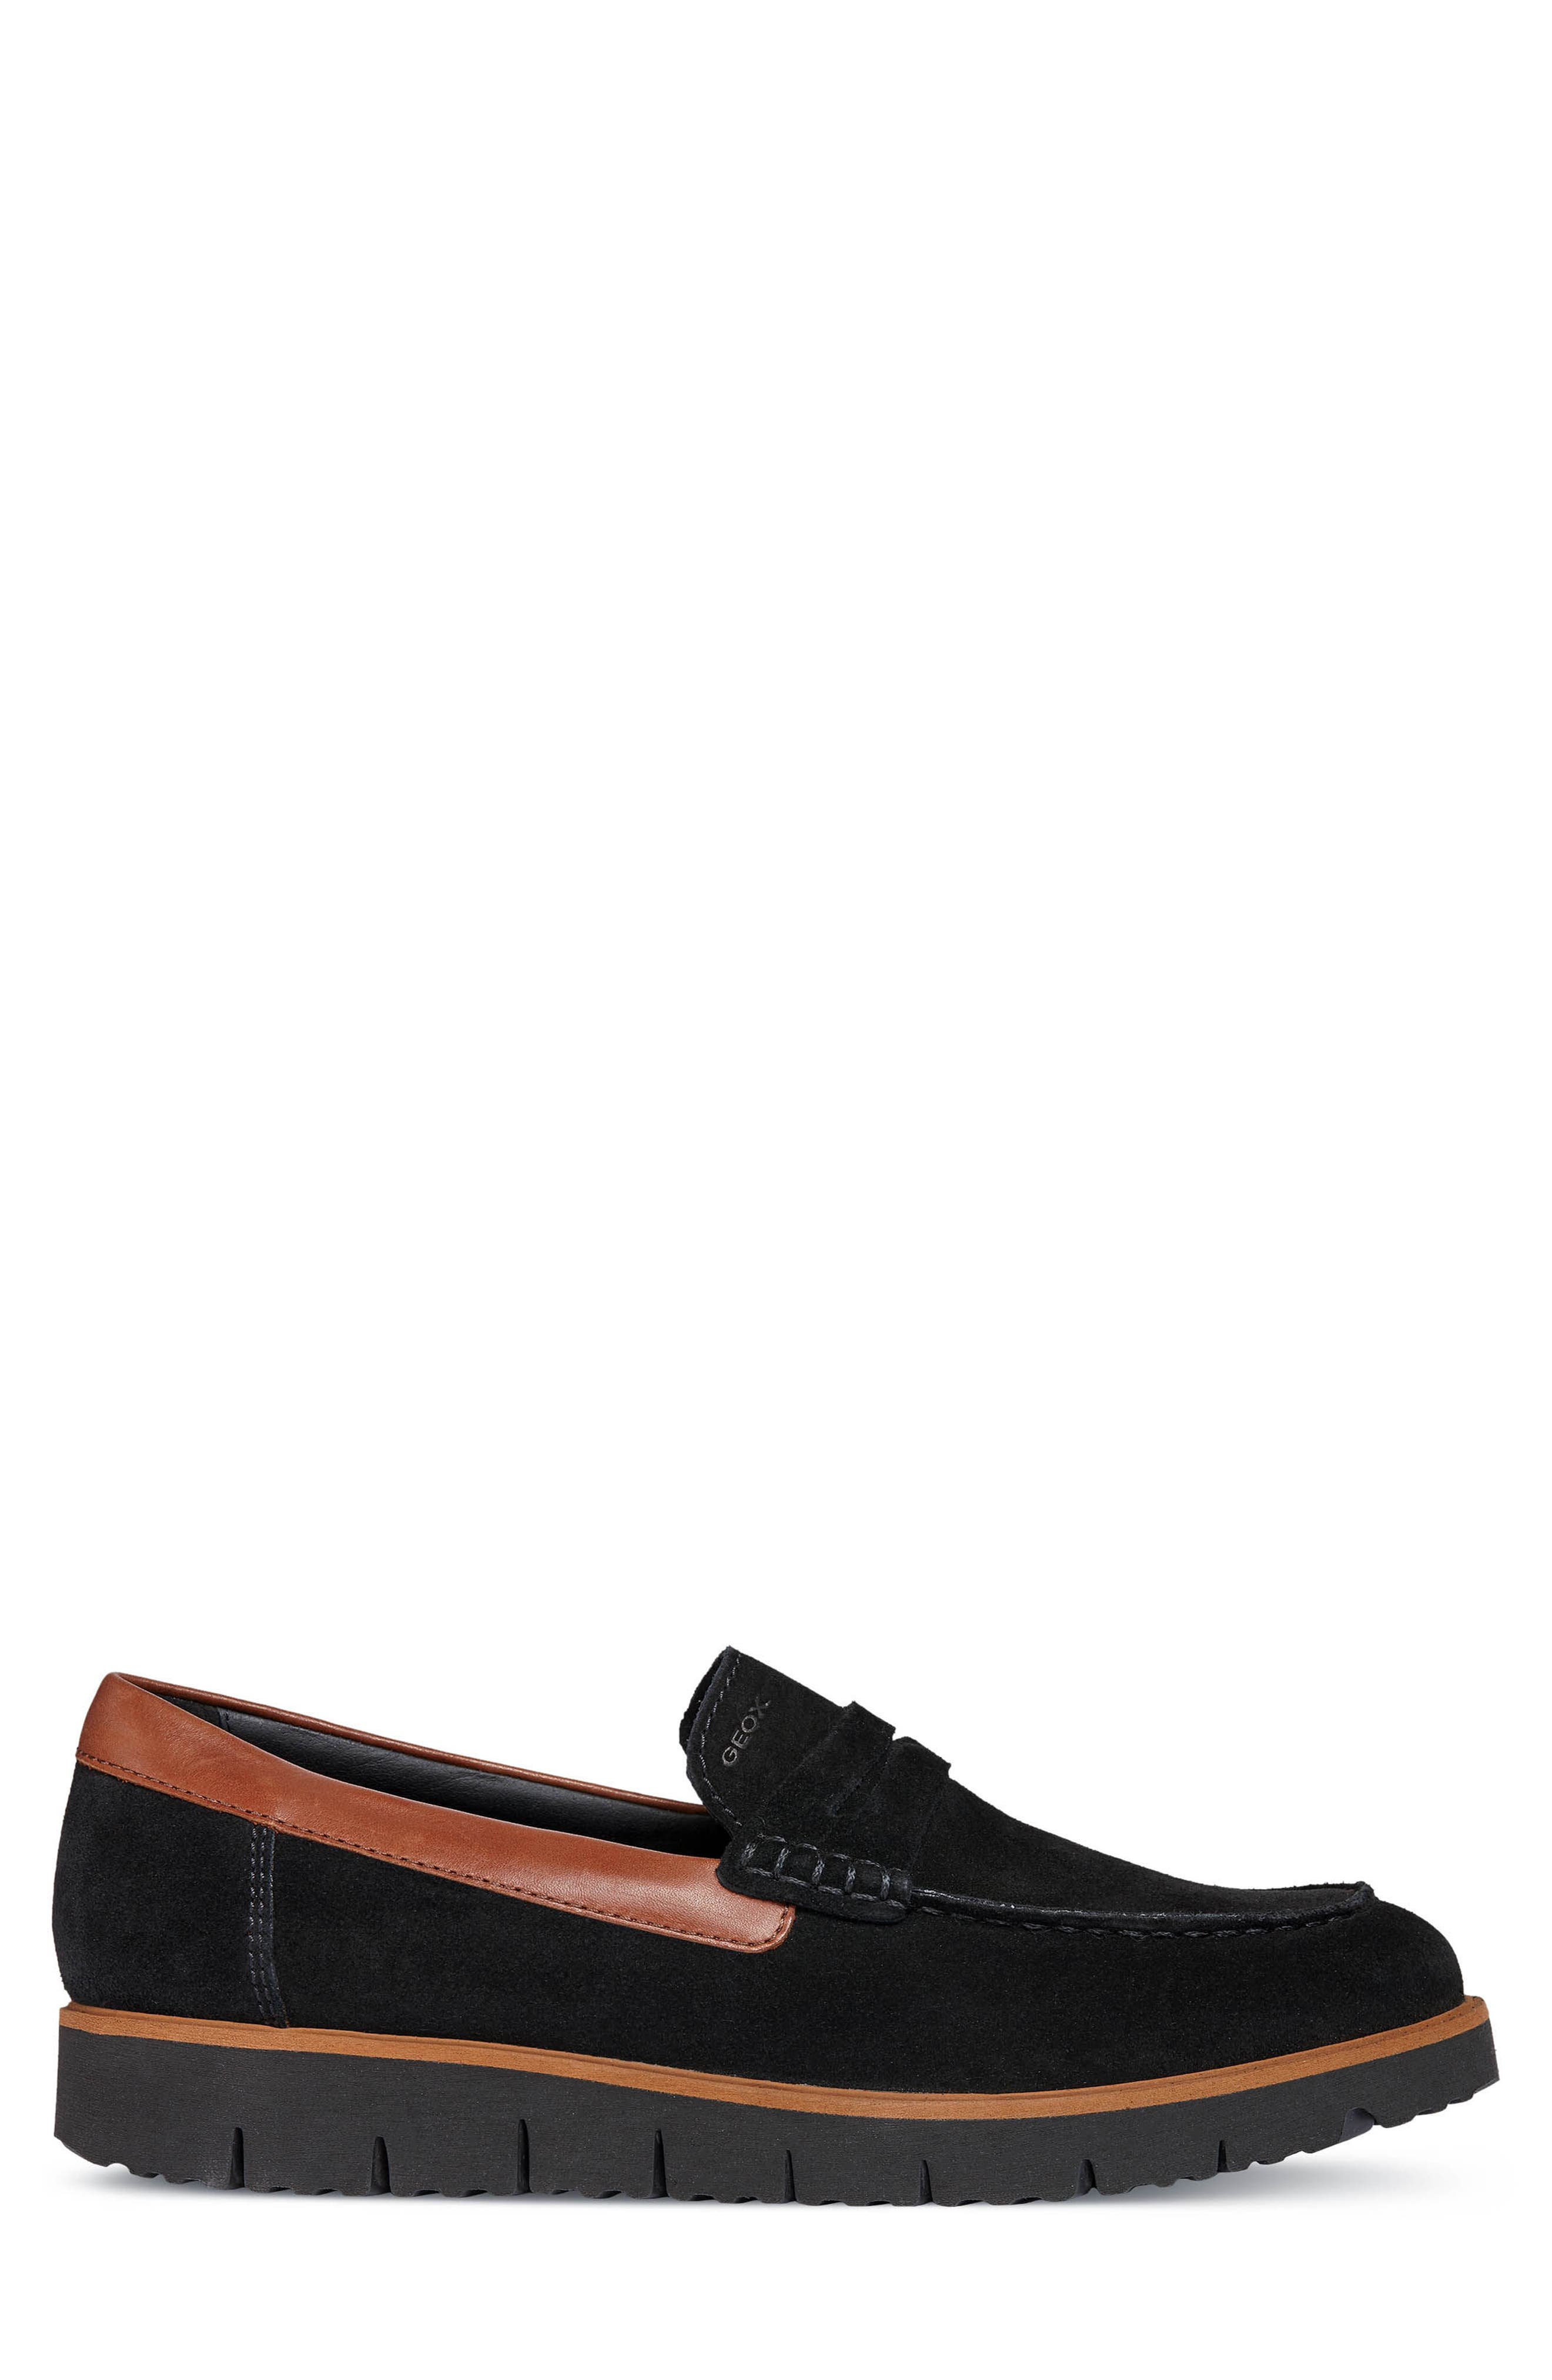 New Pluges 6 Penny Loafer,                             Alternate thumbnail 3, color,                             002